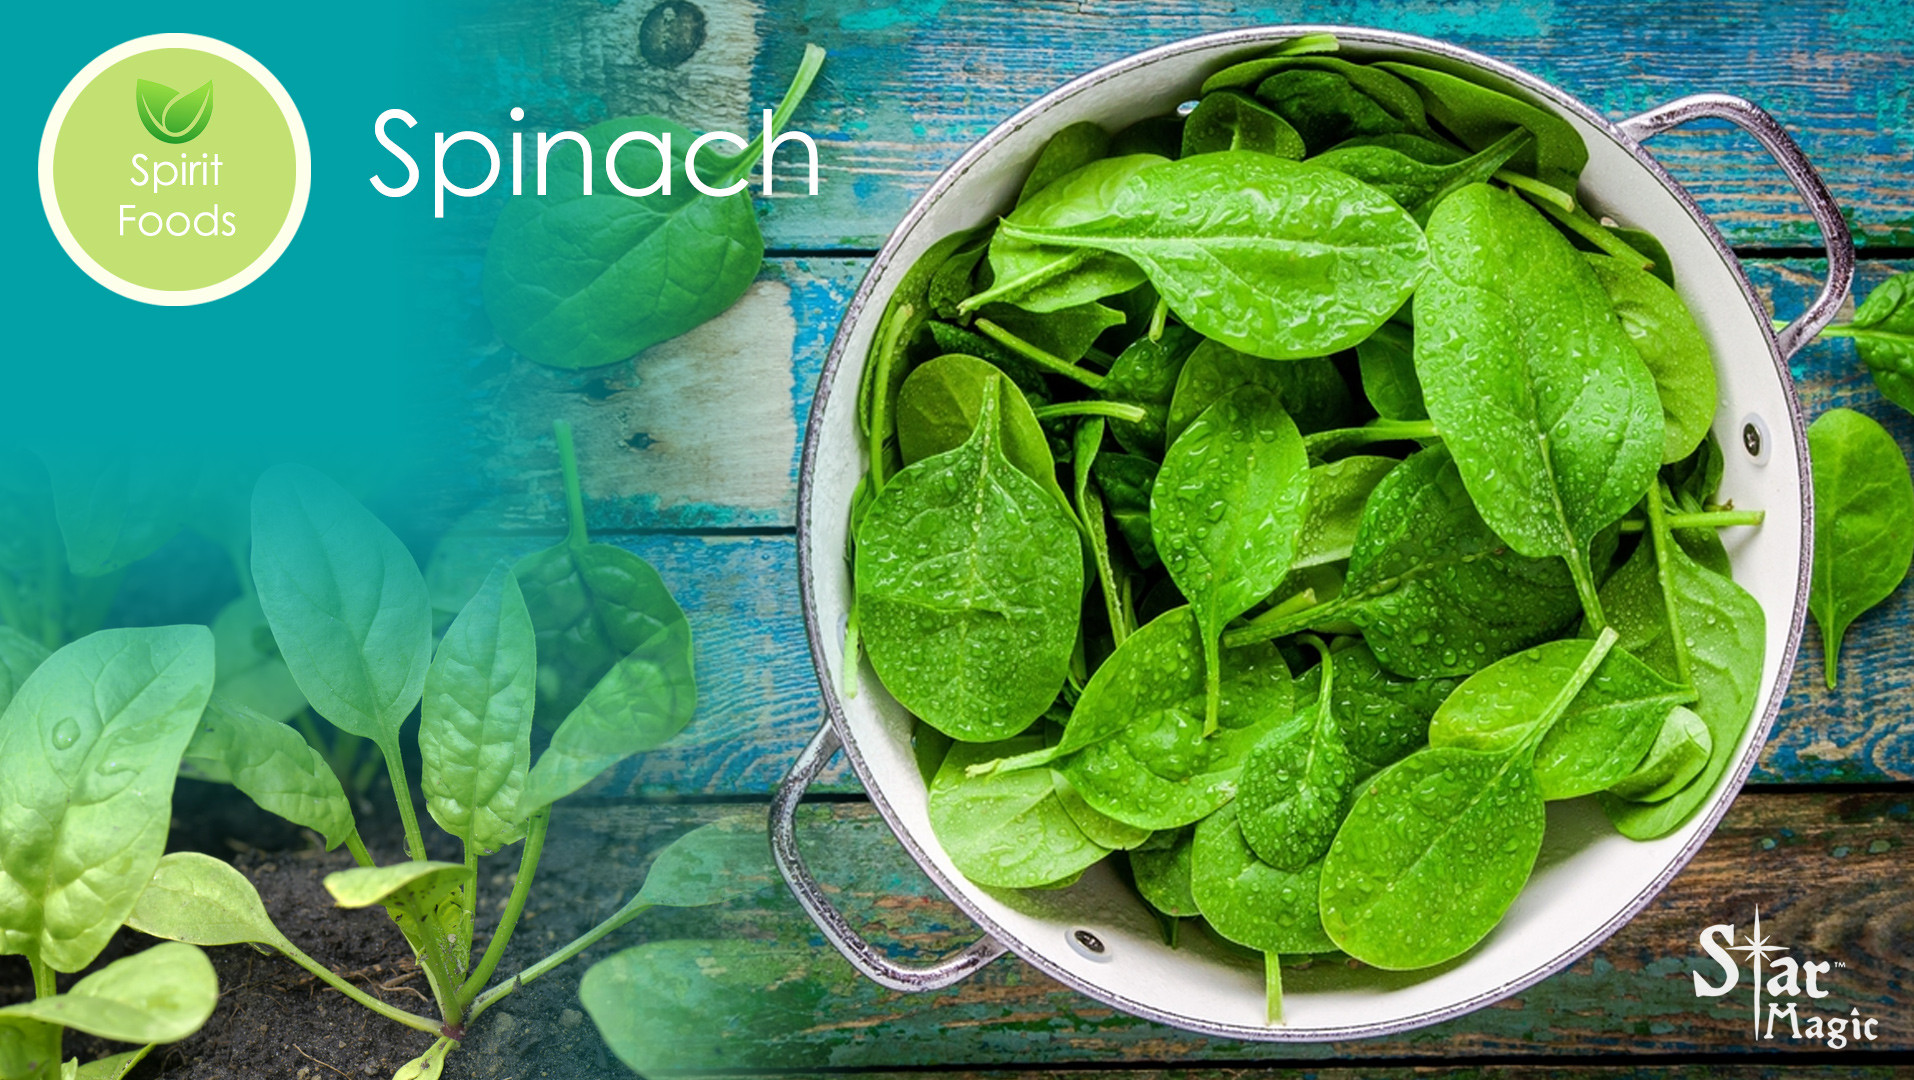 Spirit Food Spinach